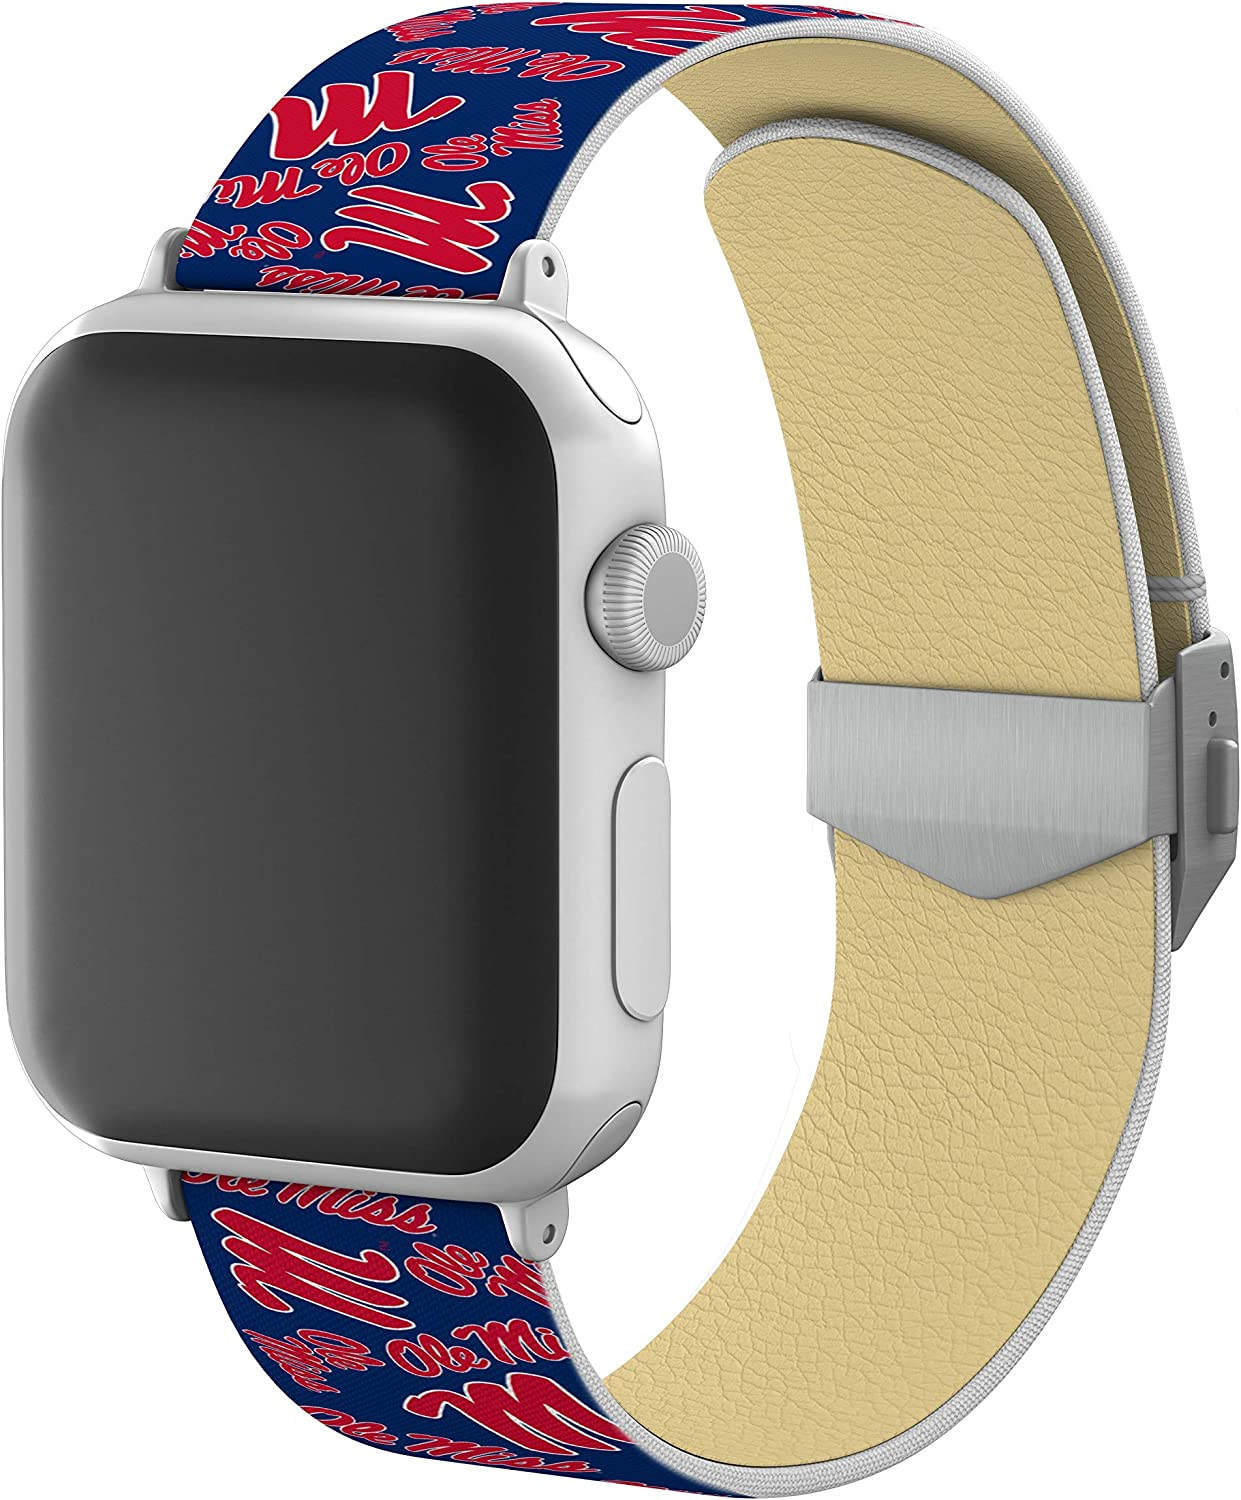 AFFINITY BANDS Mississippi Ole Miss Full Print Watch Band with Engraved Buckle Compatible with Apple Watch - 38mm/40mm Random Logo